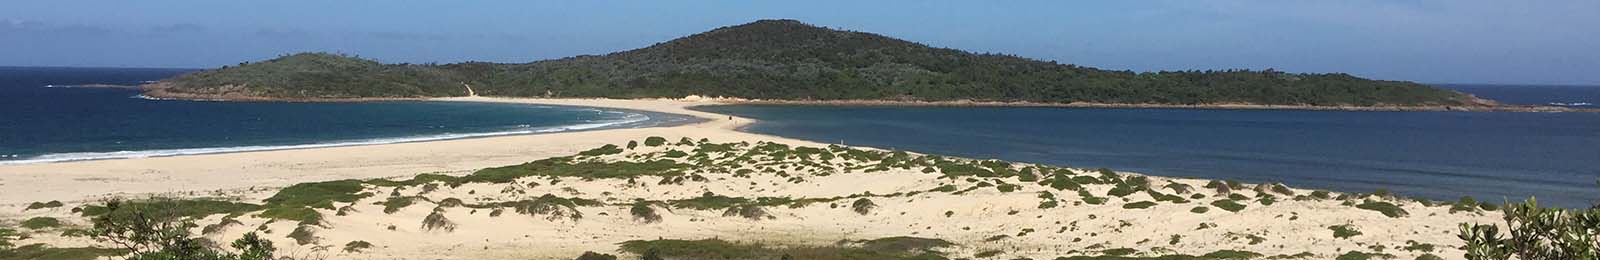 Image of Port Stephens environment